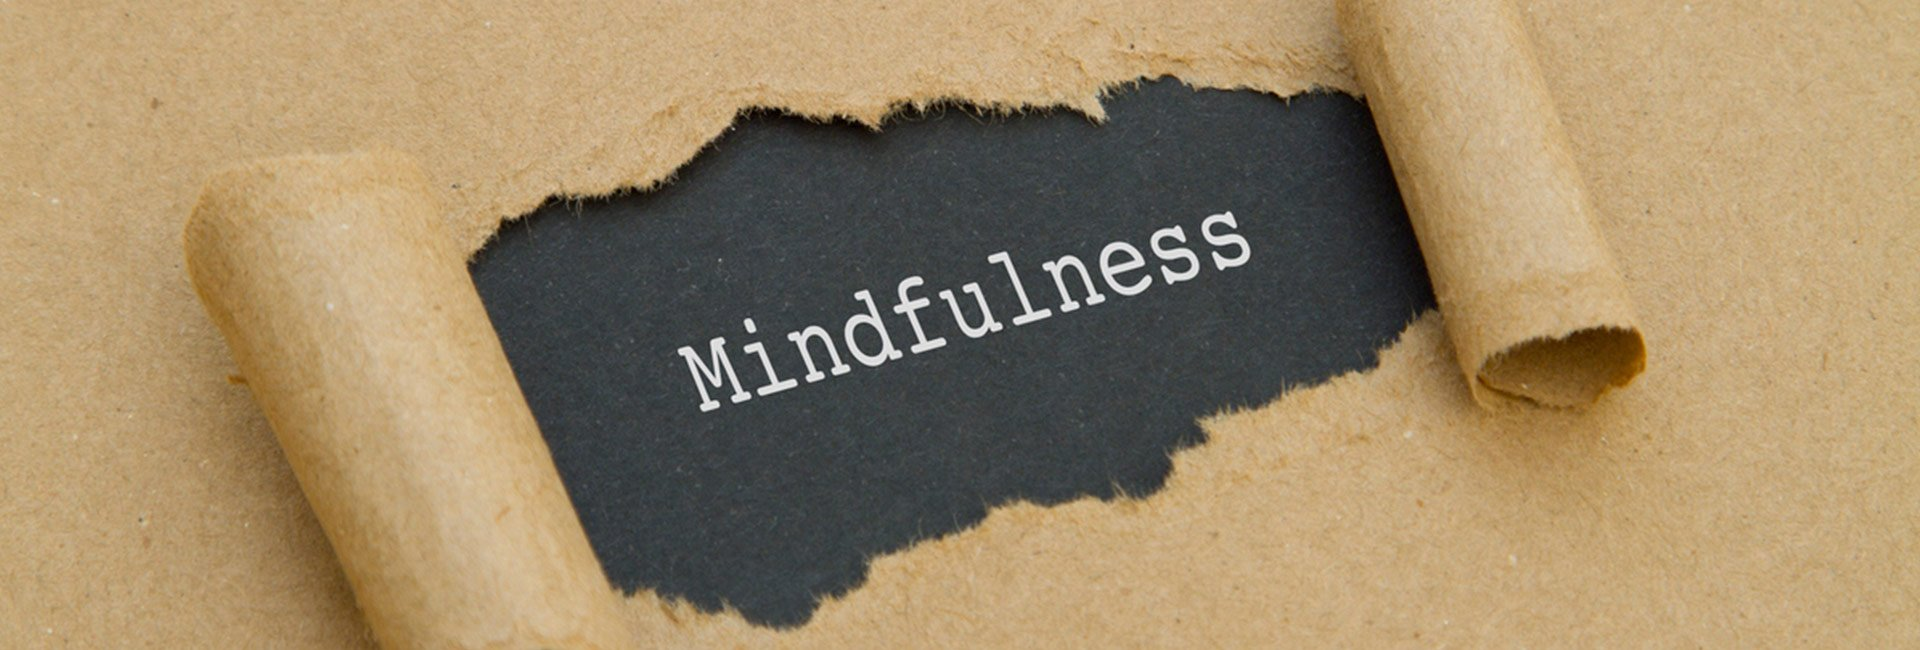 mindfulness in 2019